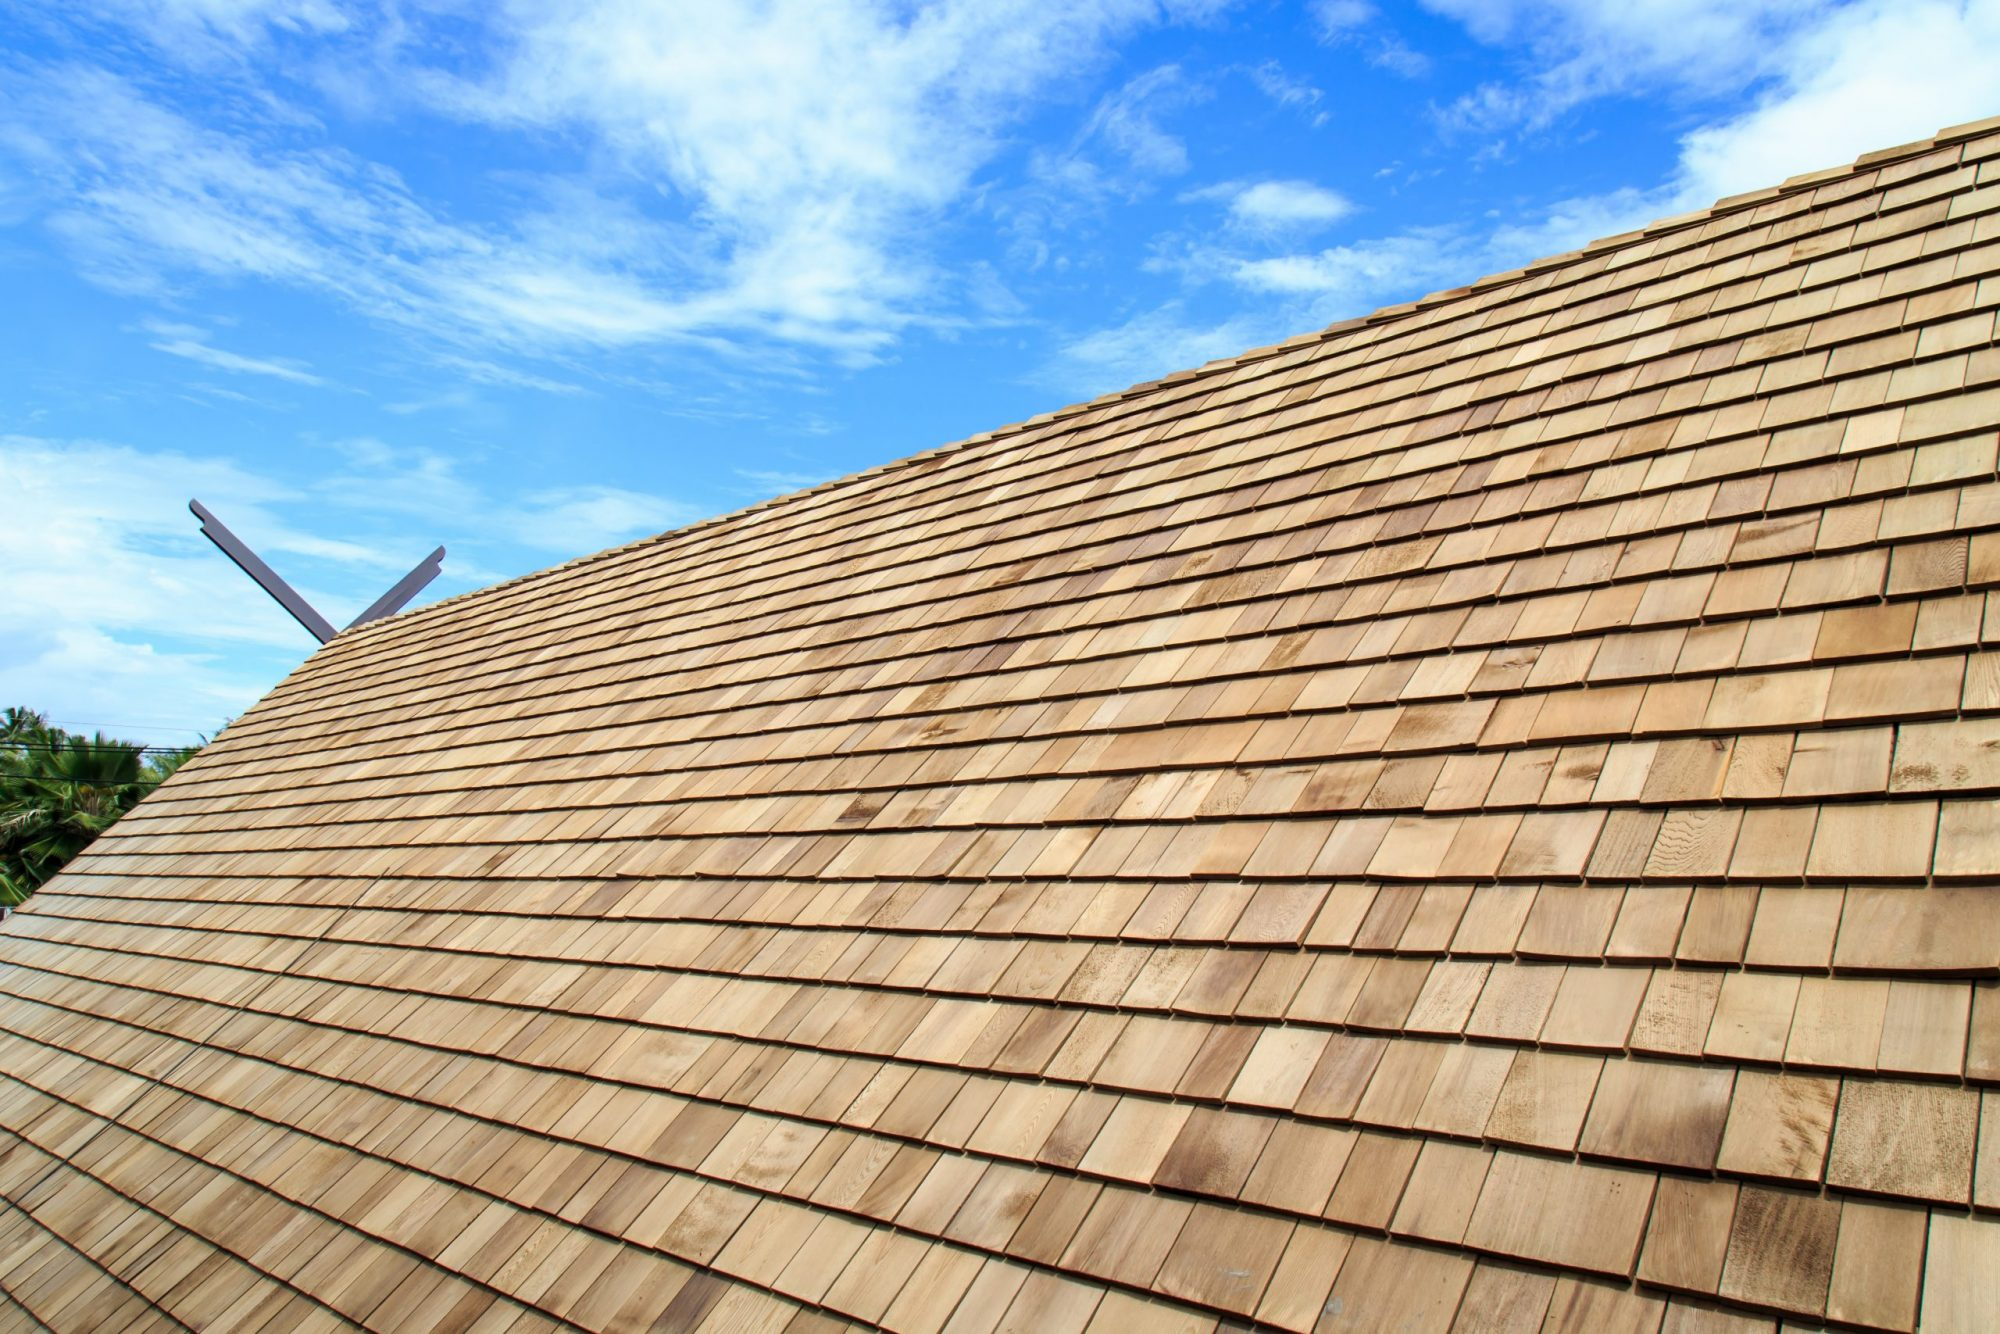 cedar shake roofing company roof contractor wood shake roof synthetic shakes composite wood shake polymer cedar shake roof